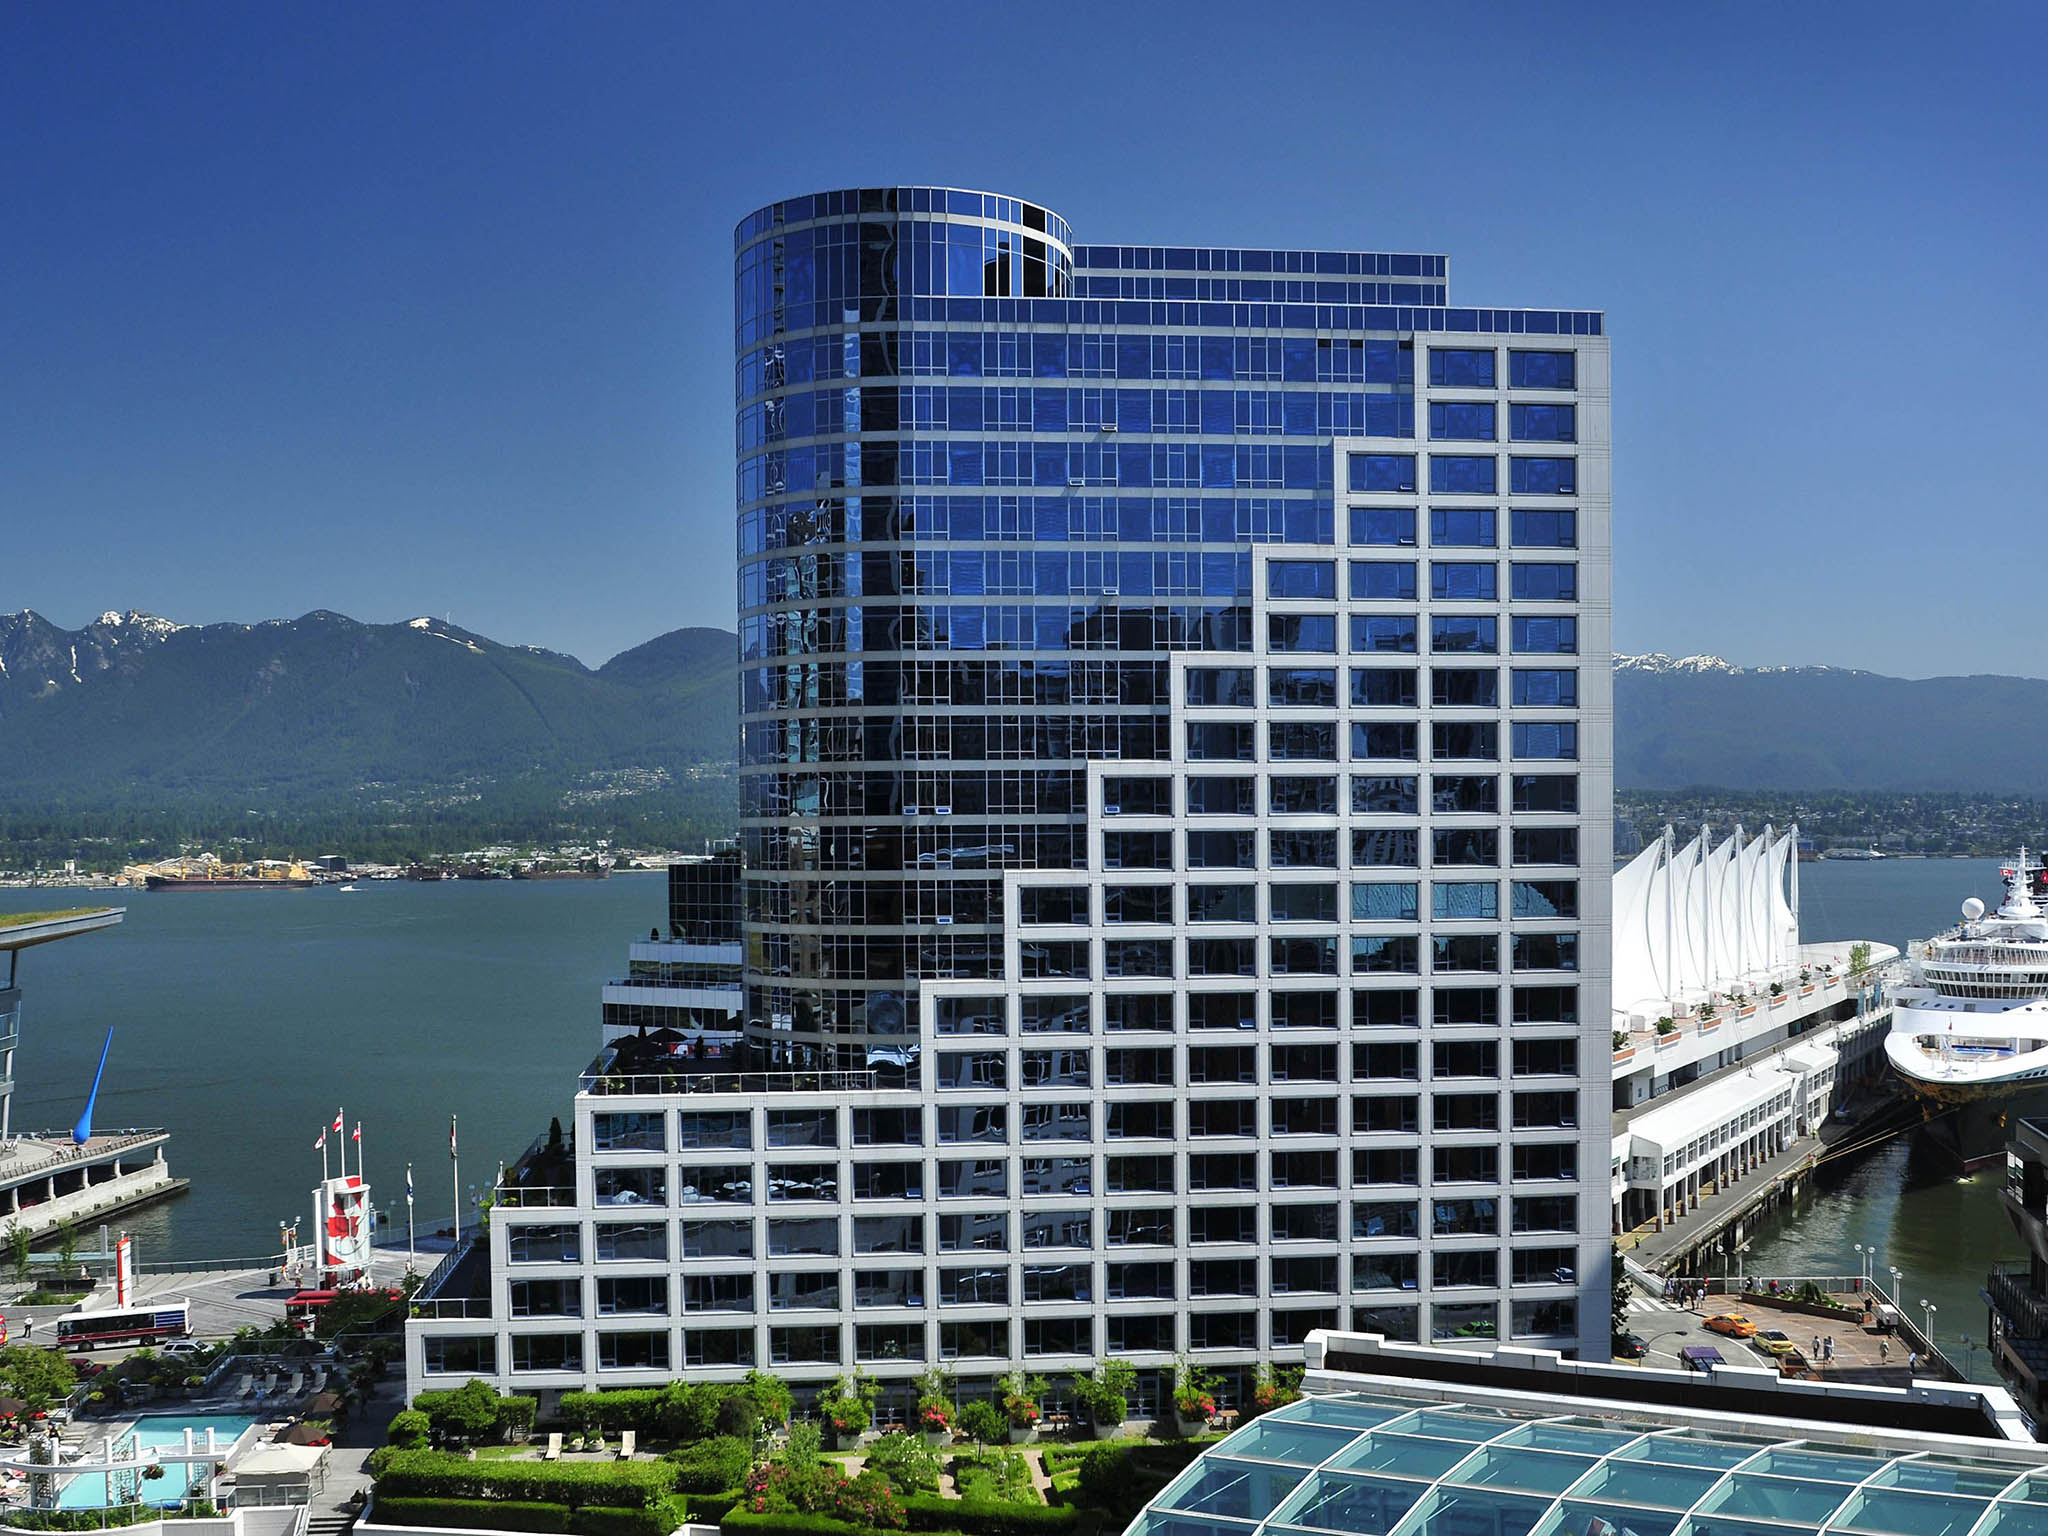 Hotel - Fairmont Waterfront